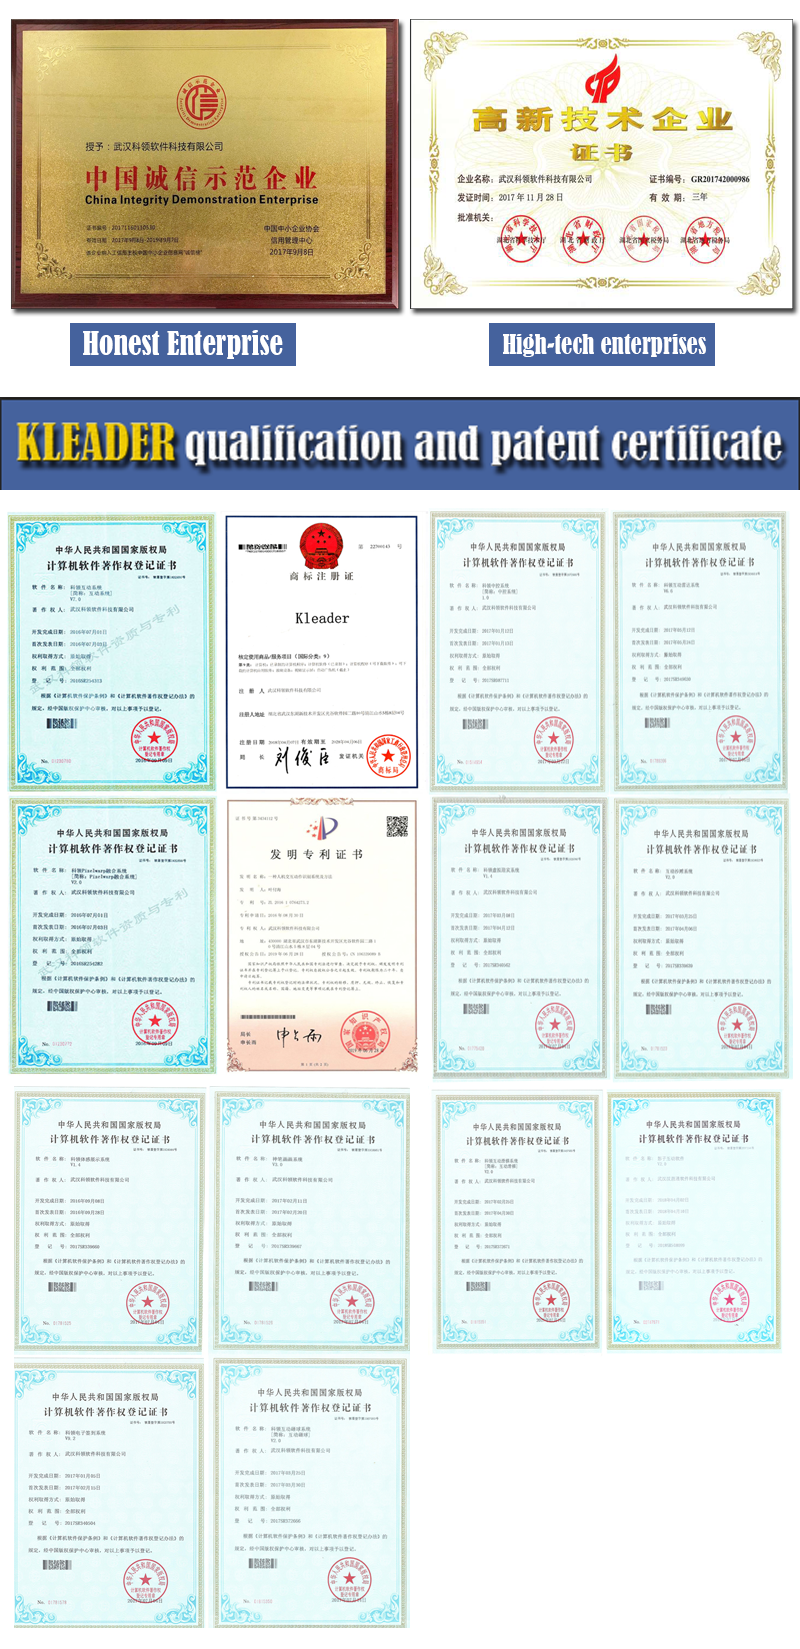 kleader qualification and patent certificate.png